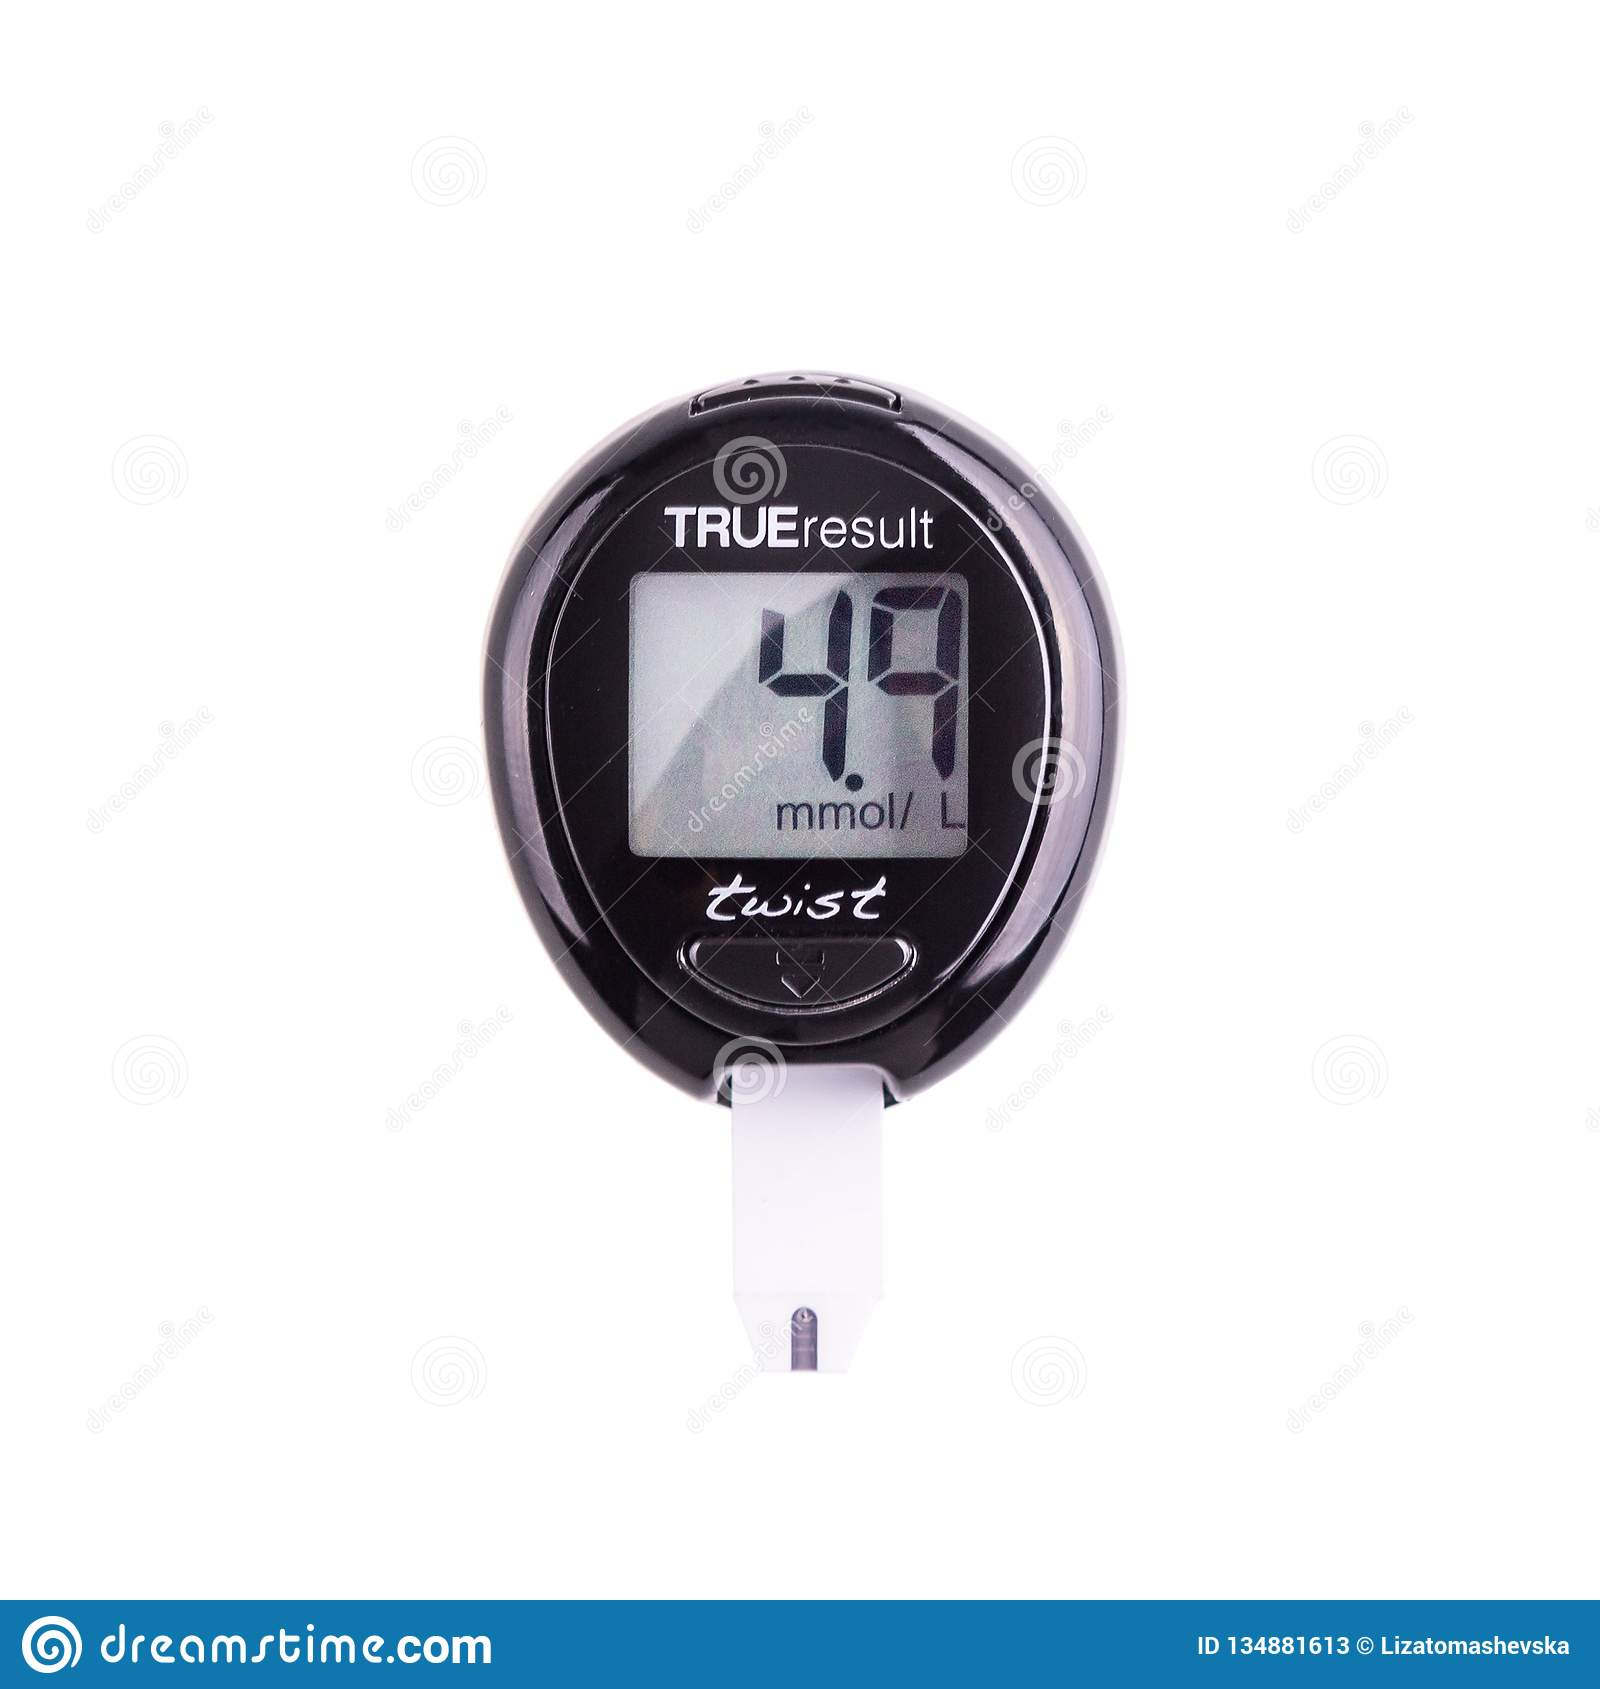 Glucometer for checking blood sugar levels on a white background